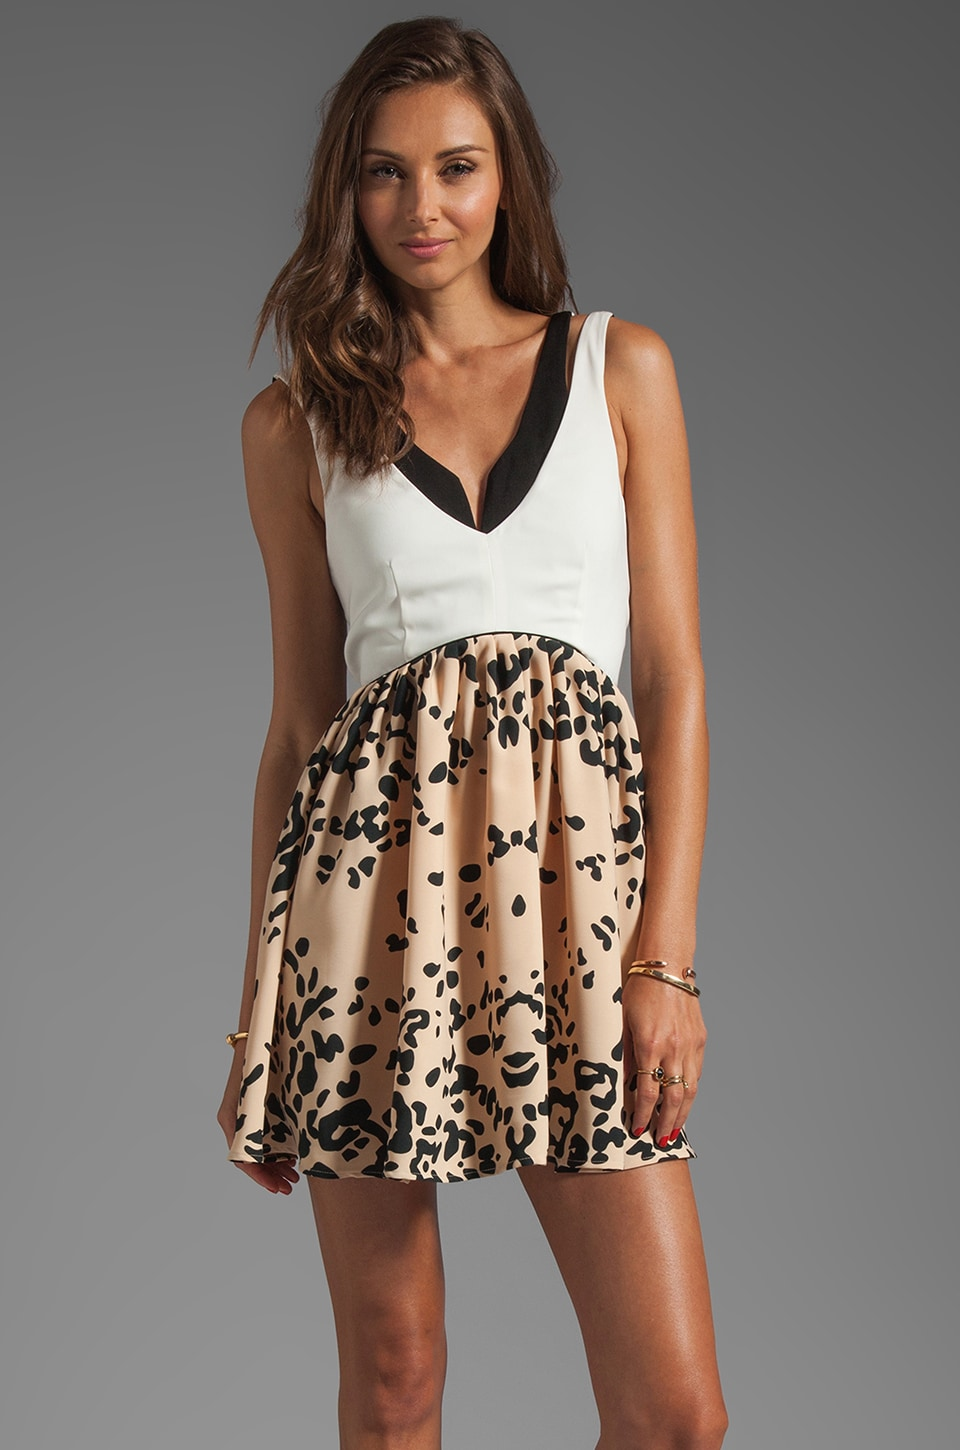 C/MEO Gotta Have It Dress in Leopard/Ivory/Black